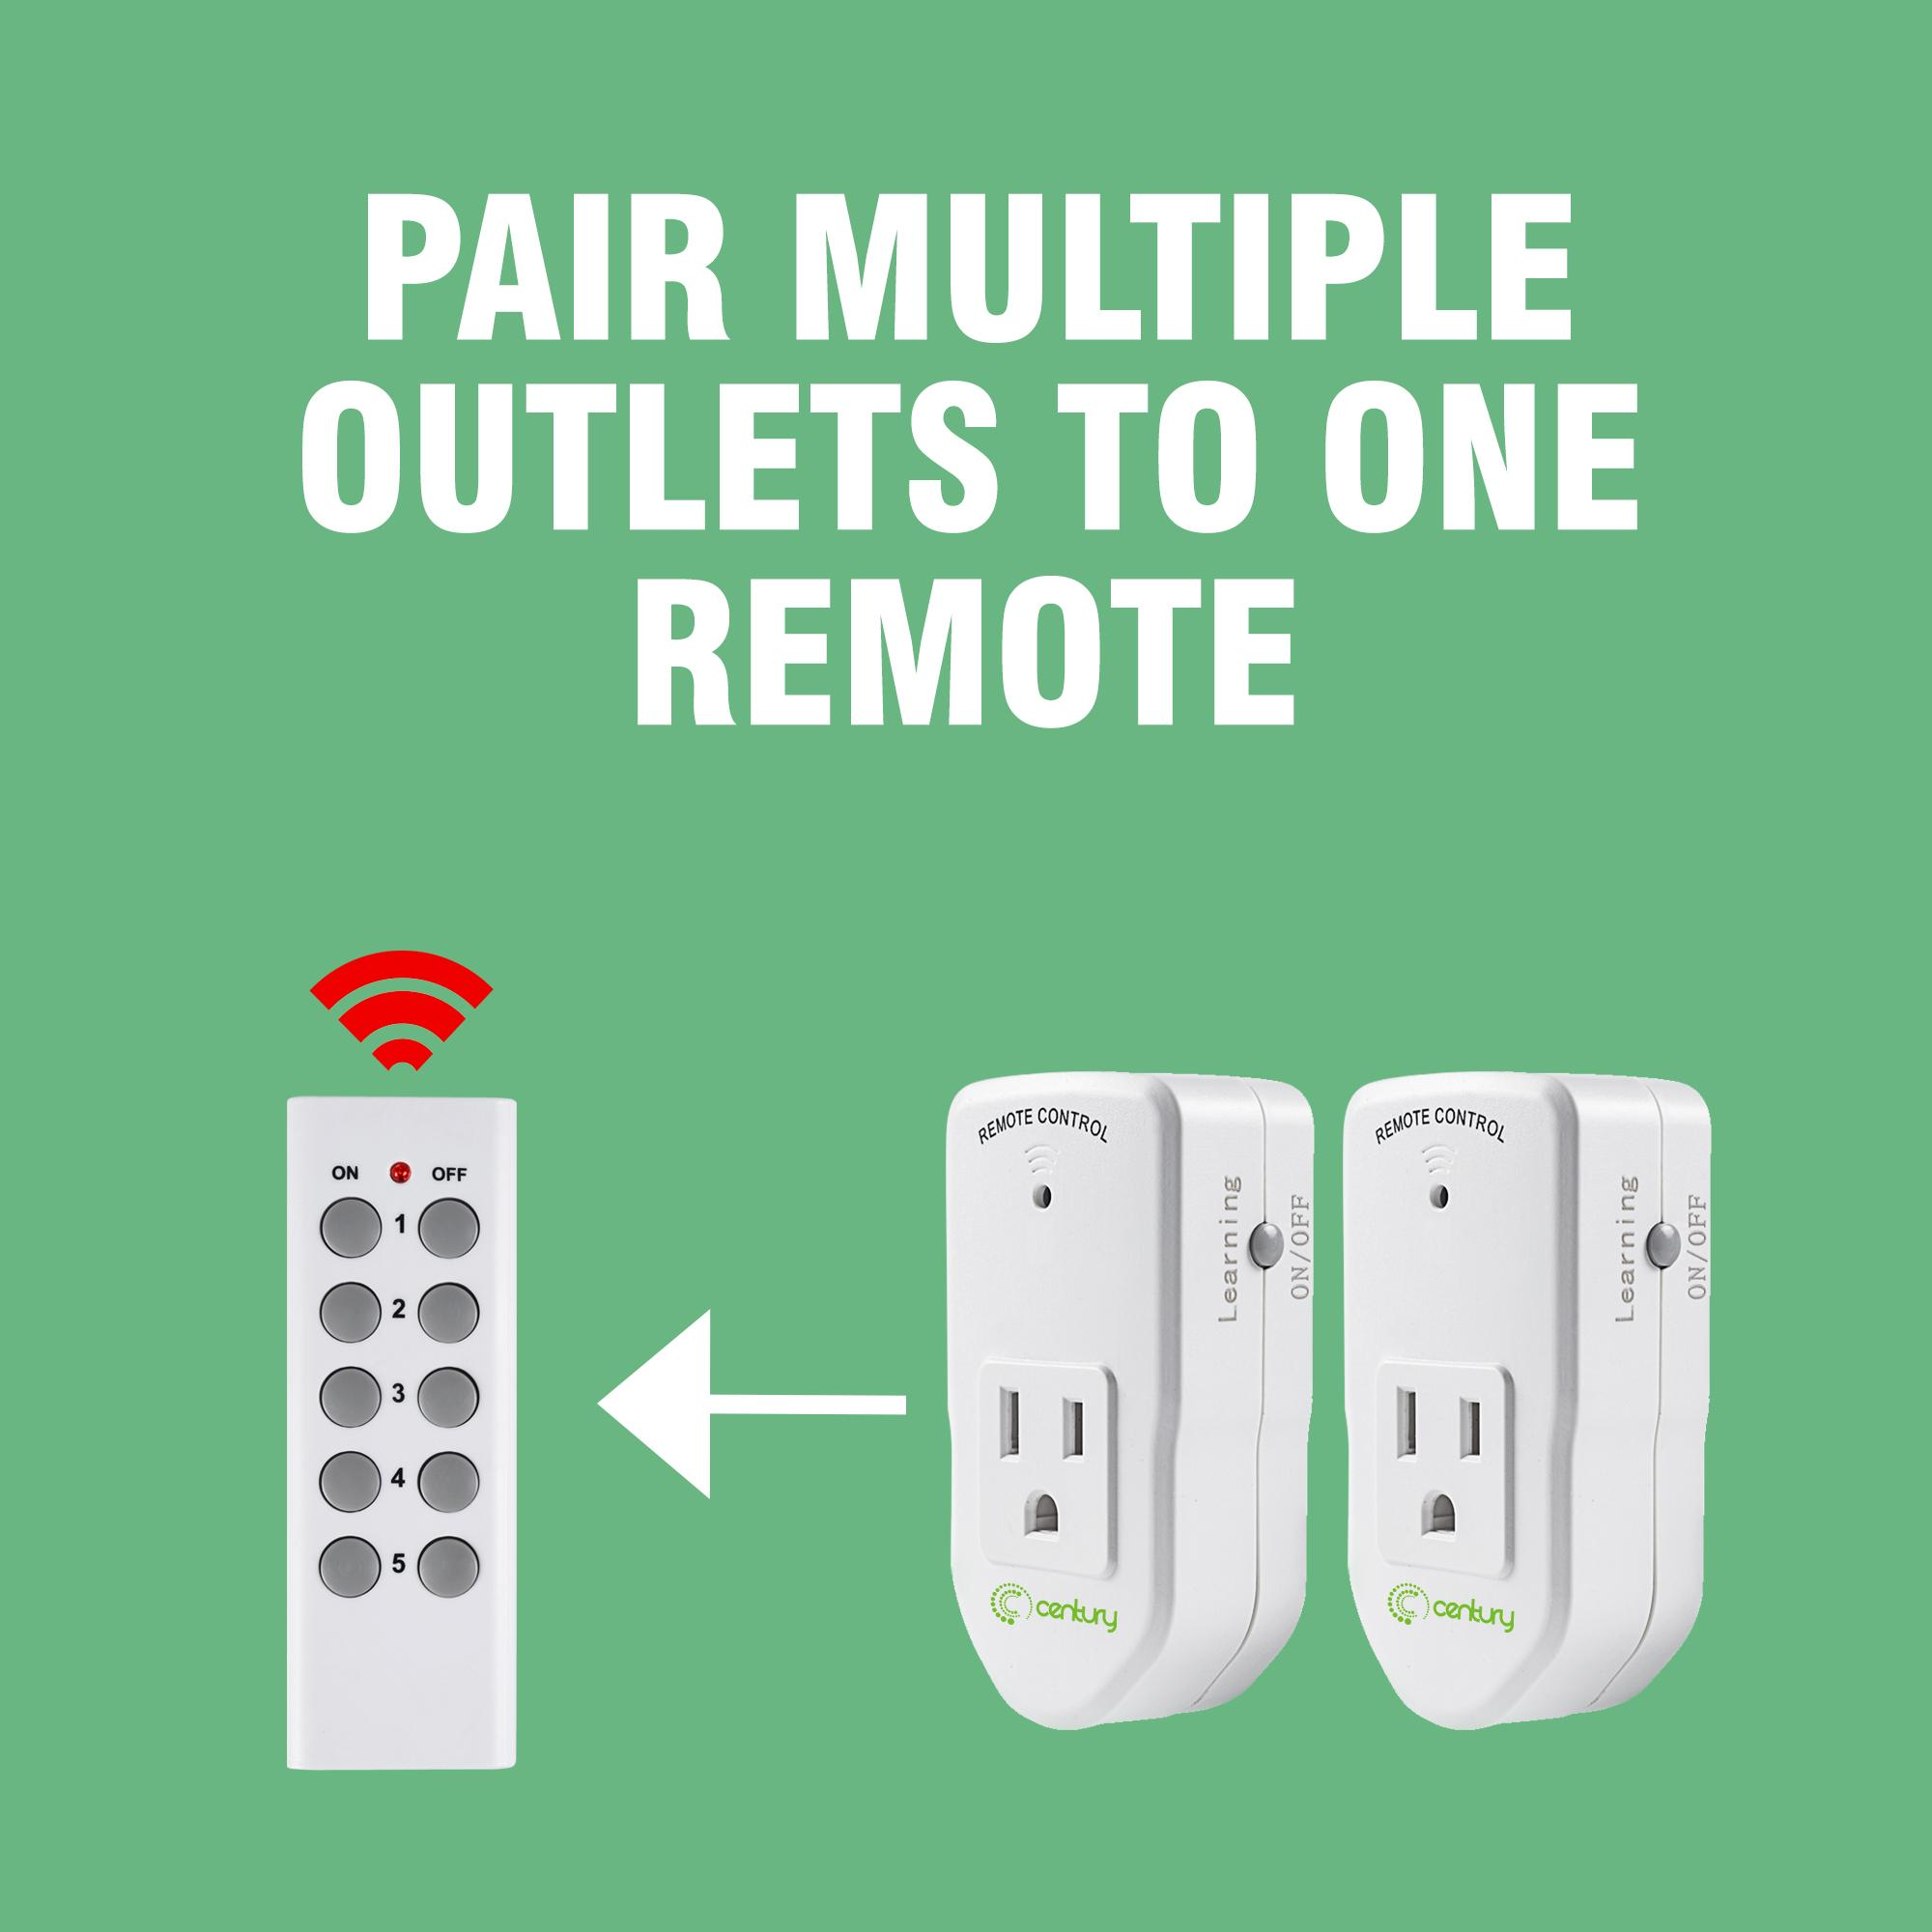 Wireless Remote Control Switch For 5 Lights And 2 Fansremote Kedsumr 1 Way On Off Digital 110v Century Electrical Outlet